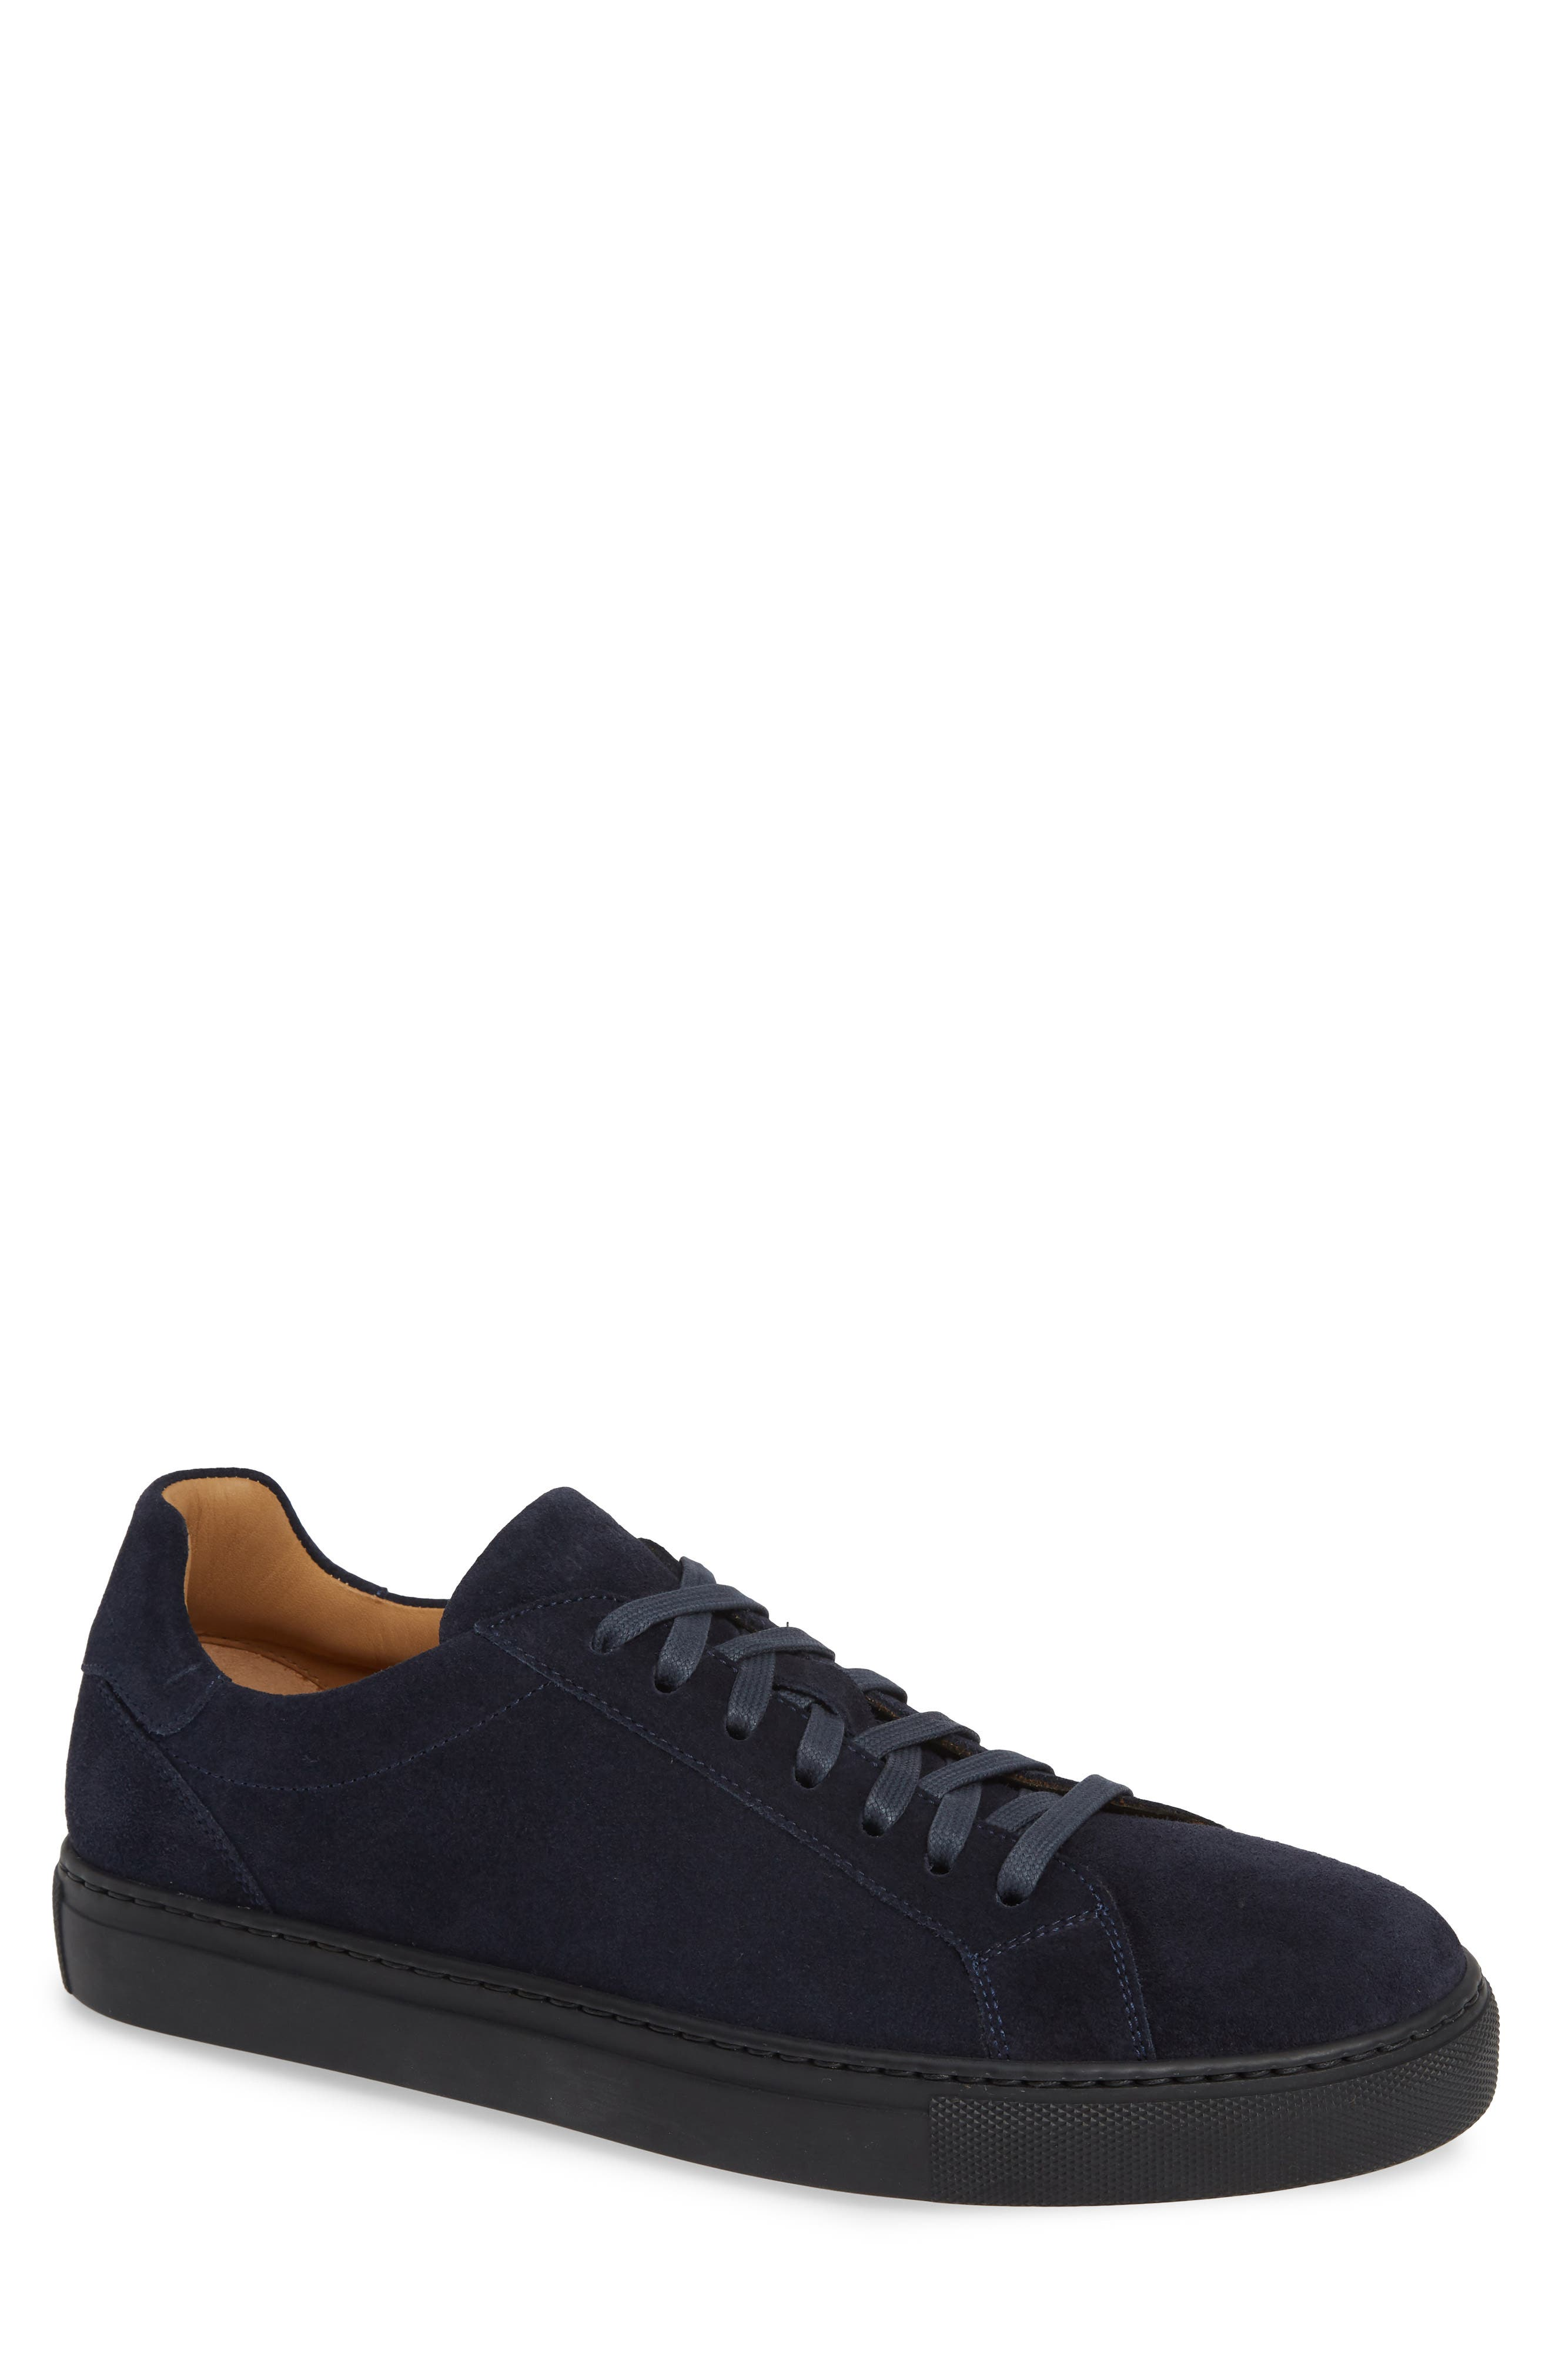 Fede Sneaker,                         Main,                         color, NAVY SUEDE/ LEATHER